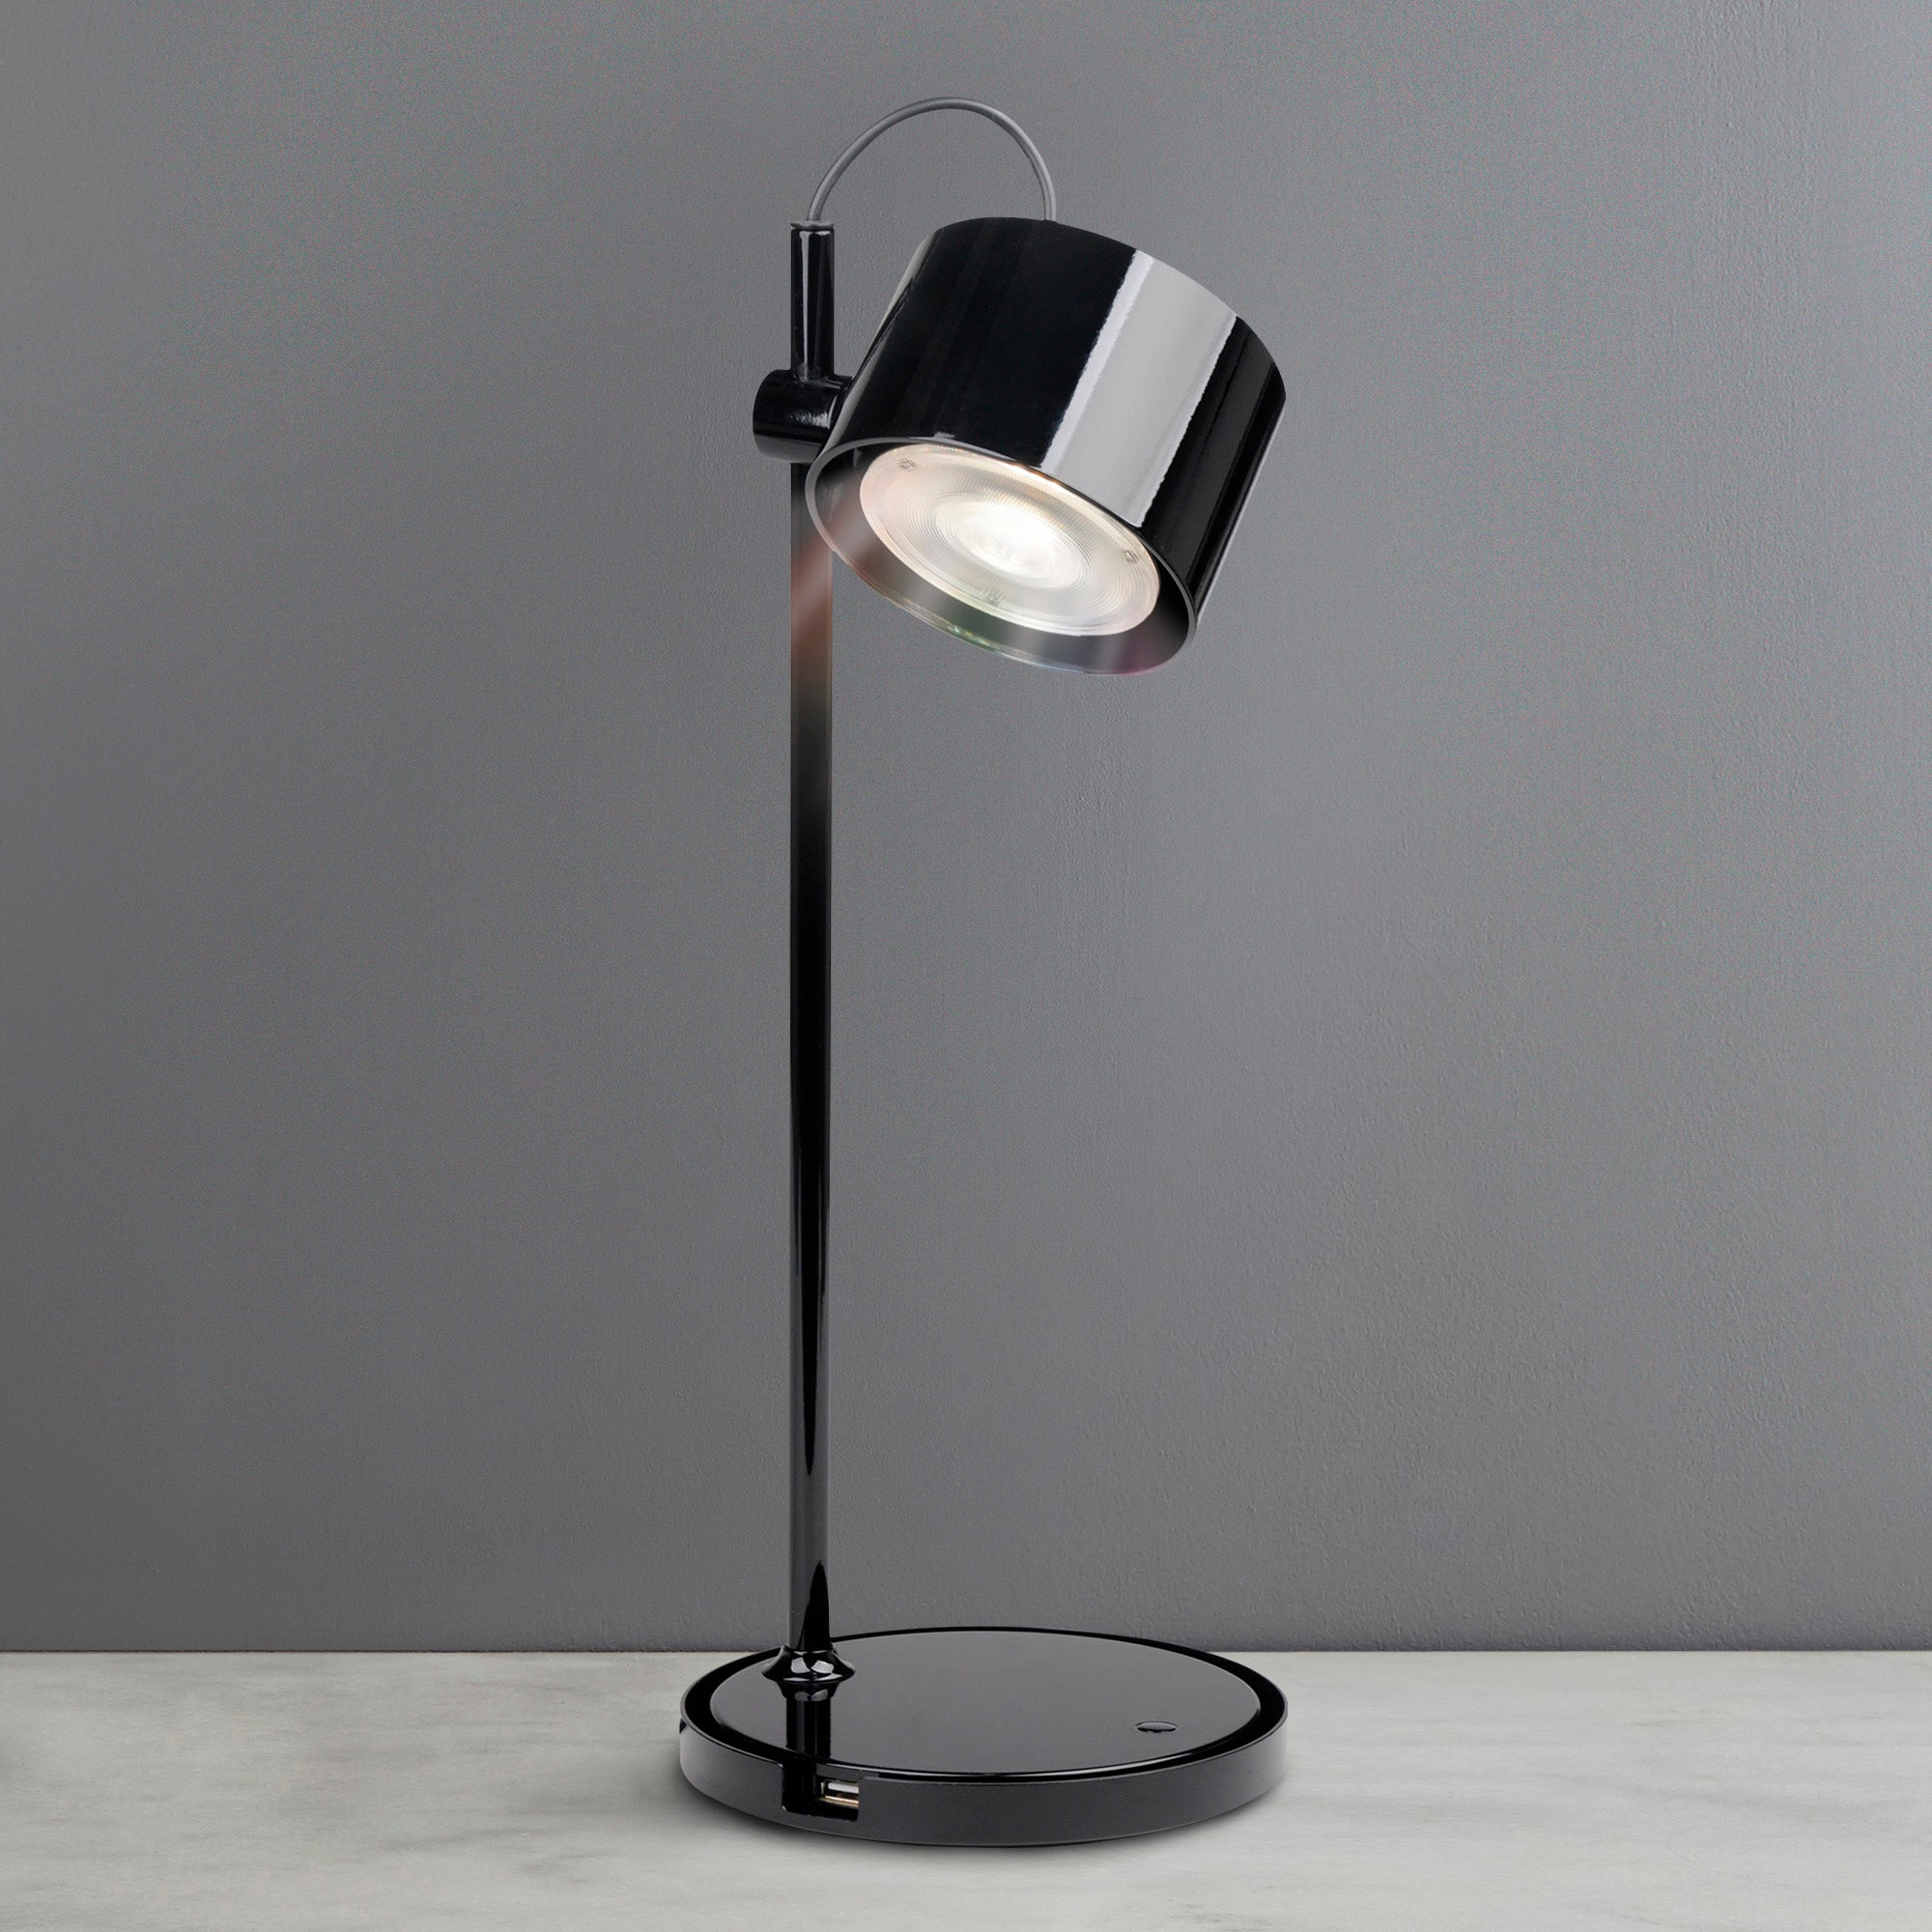 Image of iDual Jasmine Black Table Lamp with Remote Control Black